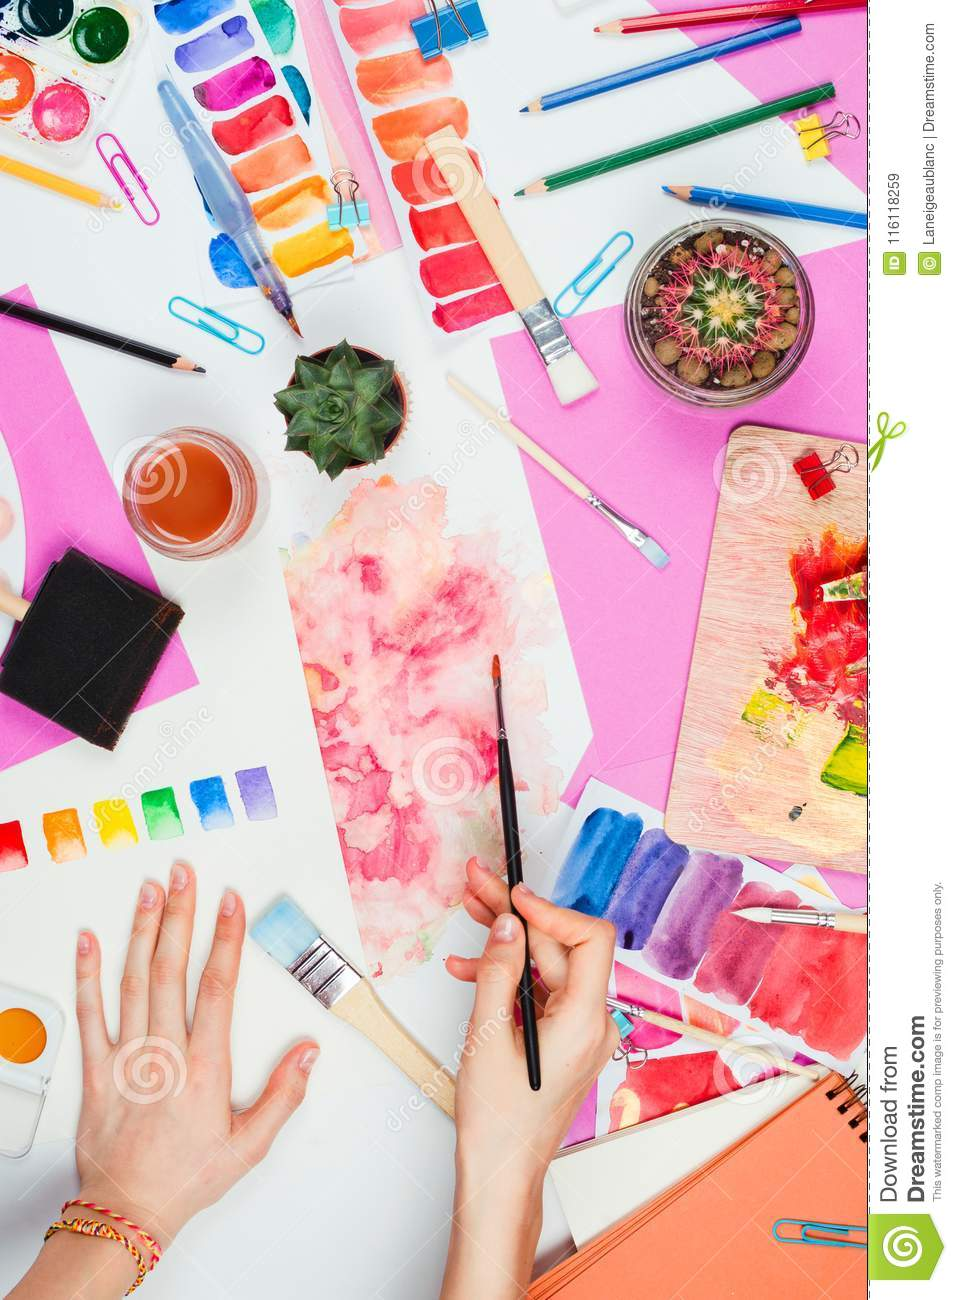 https://thumbs.dreamstime.com/z/woman-s-hands-holding-brush-pallets-pencils-watercolors-colored-paper-other-stationary-supplies-flatlay-artist-116118259.jpg